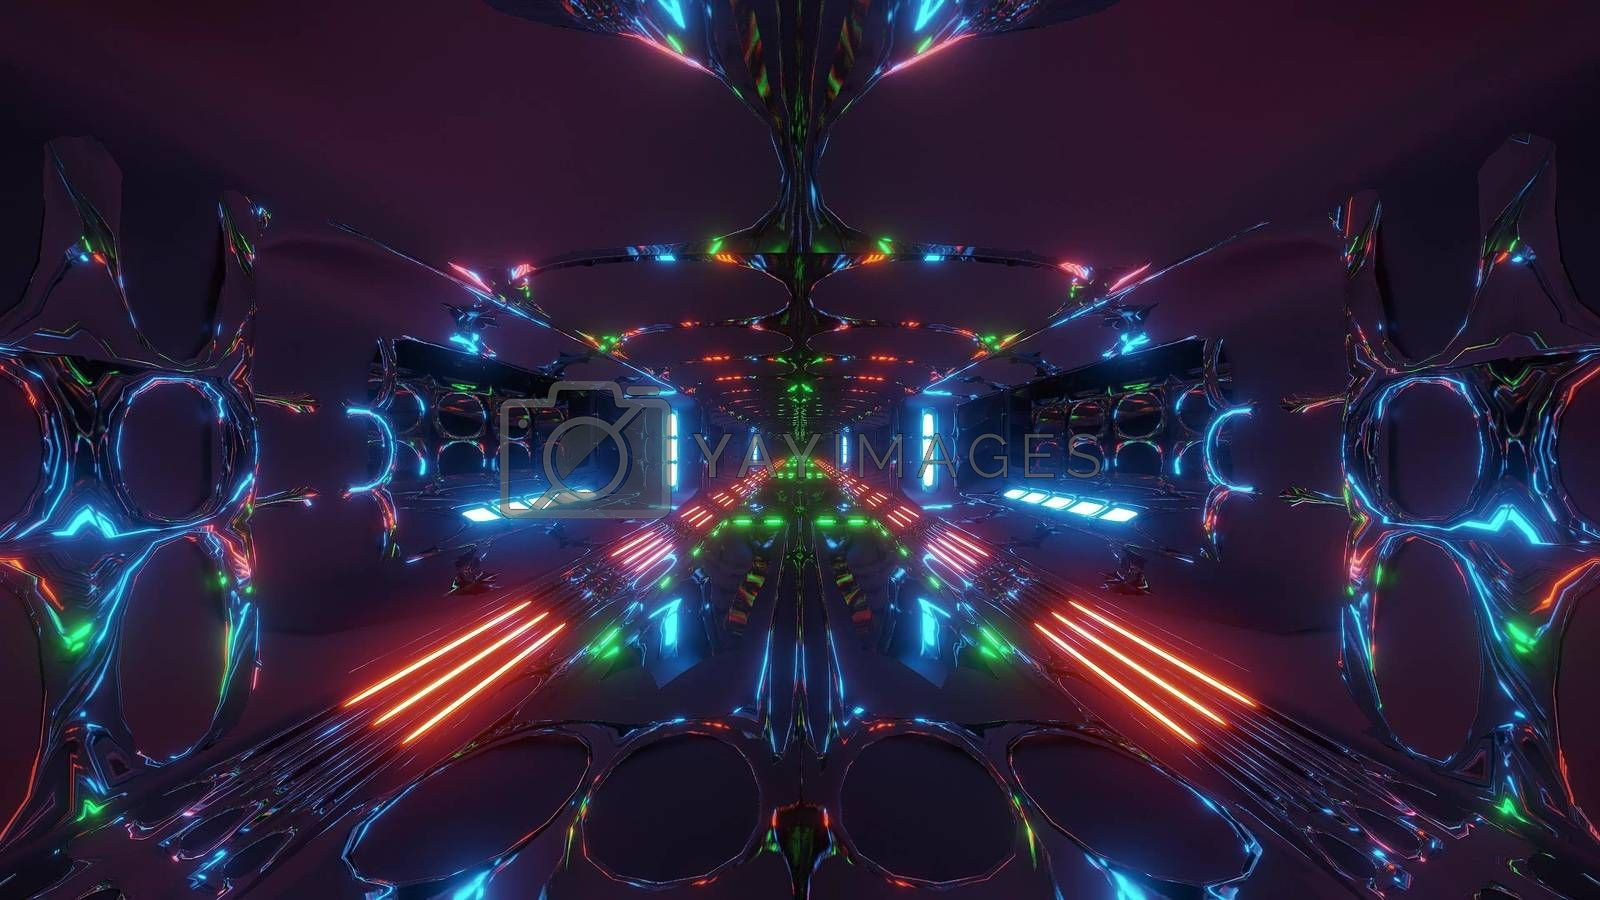 Royalty free image of futuristic scifi alien tunnel building 3d rendering wallpaper background by tunnelmotions